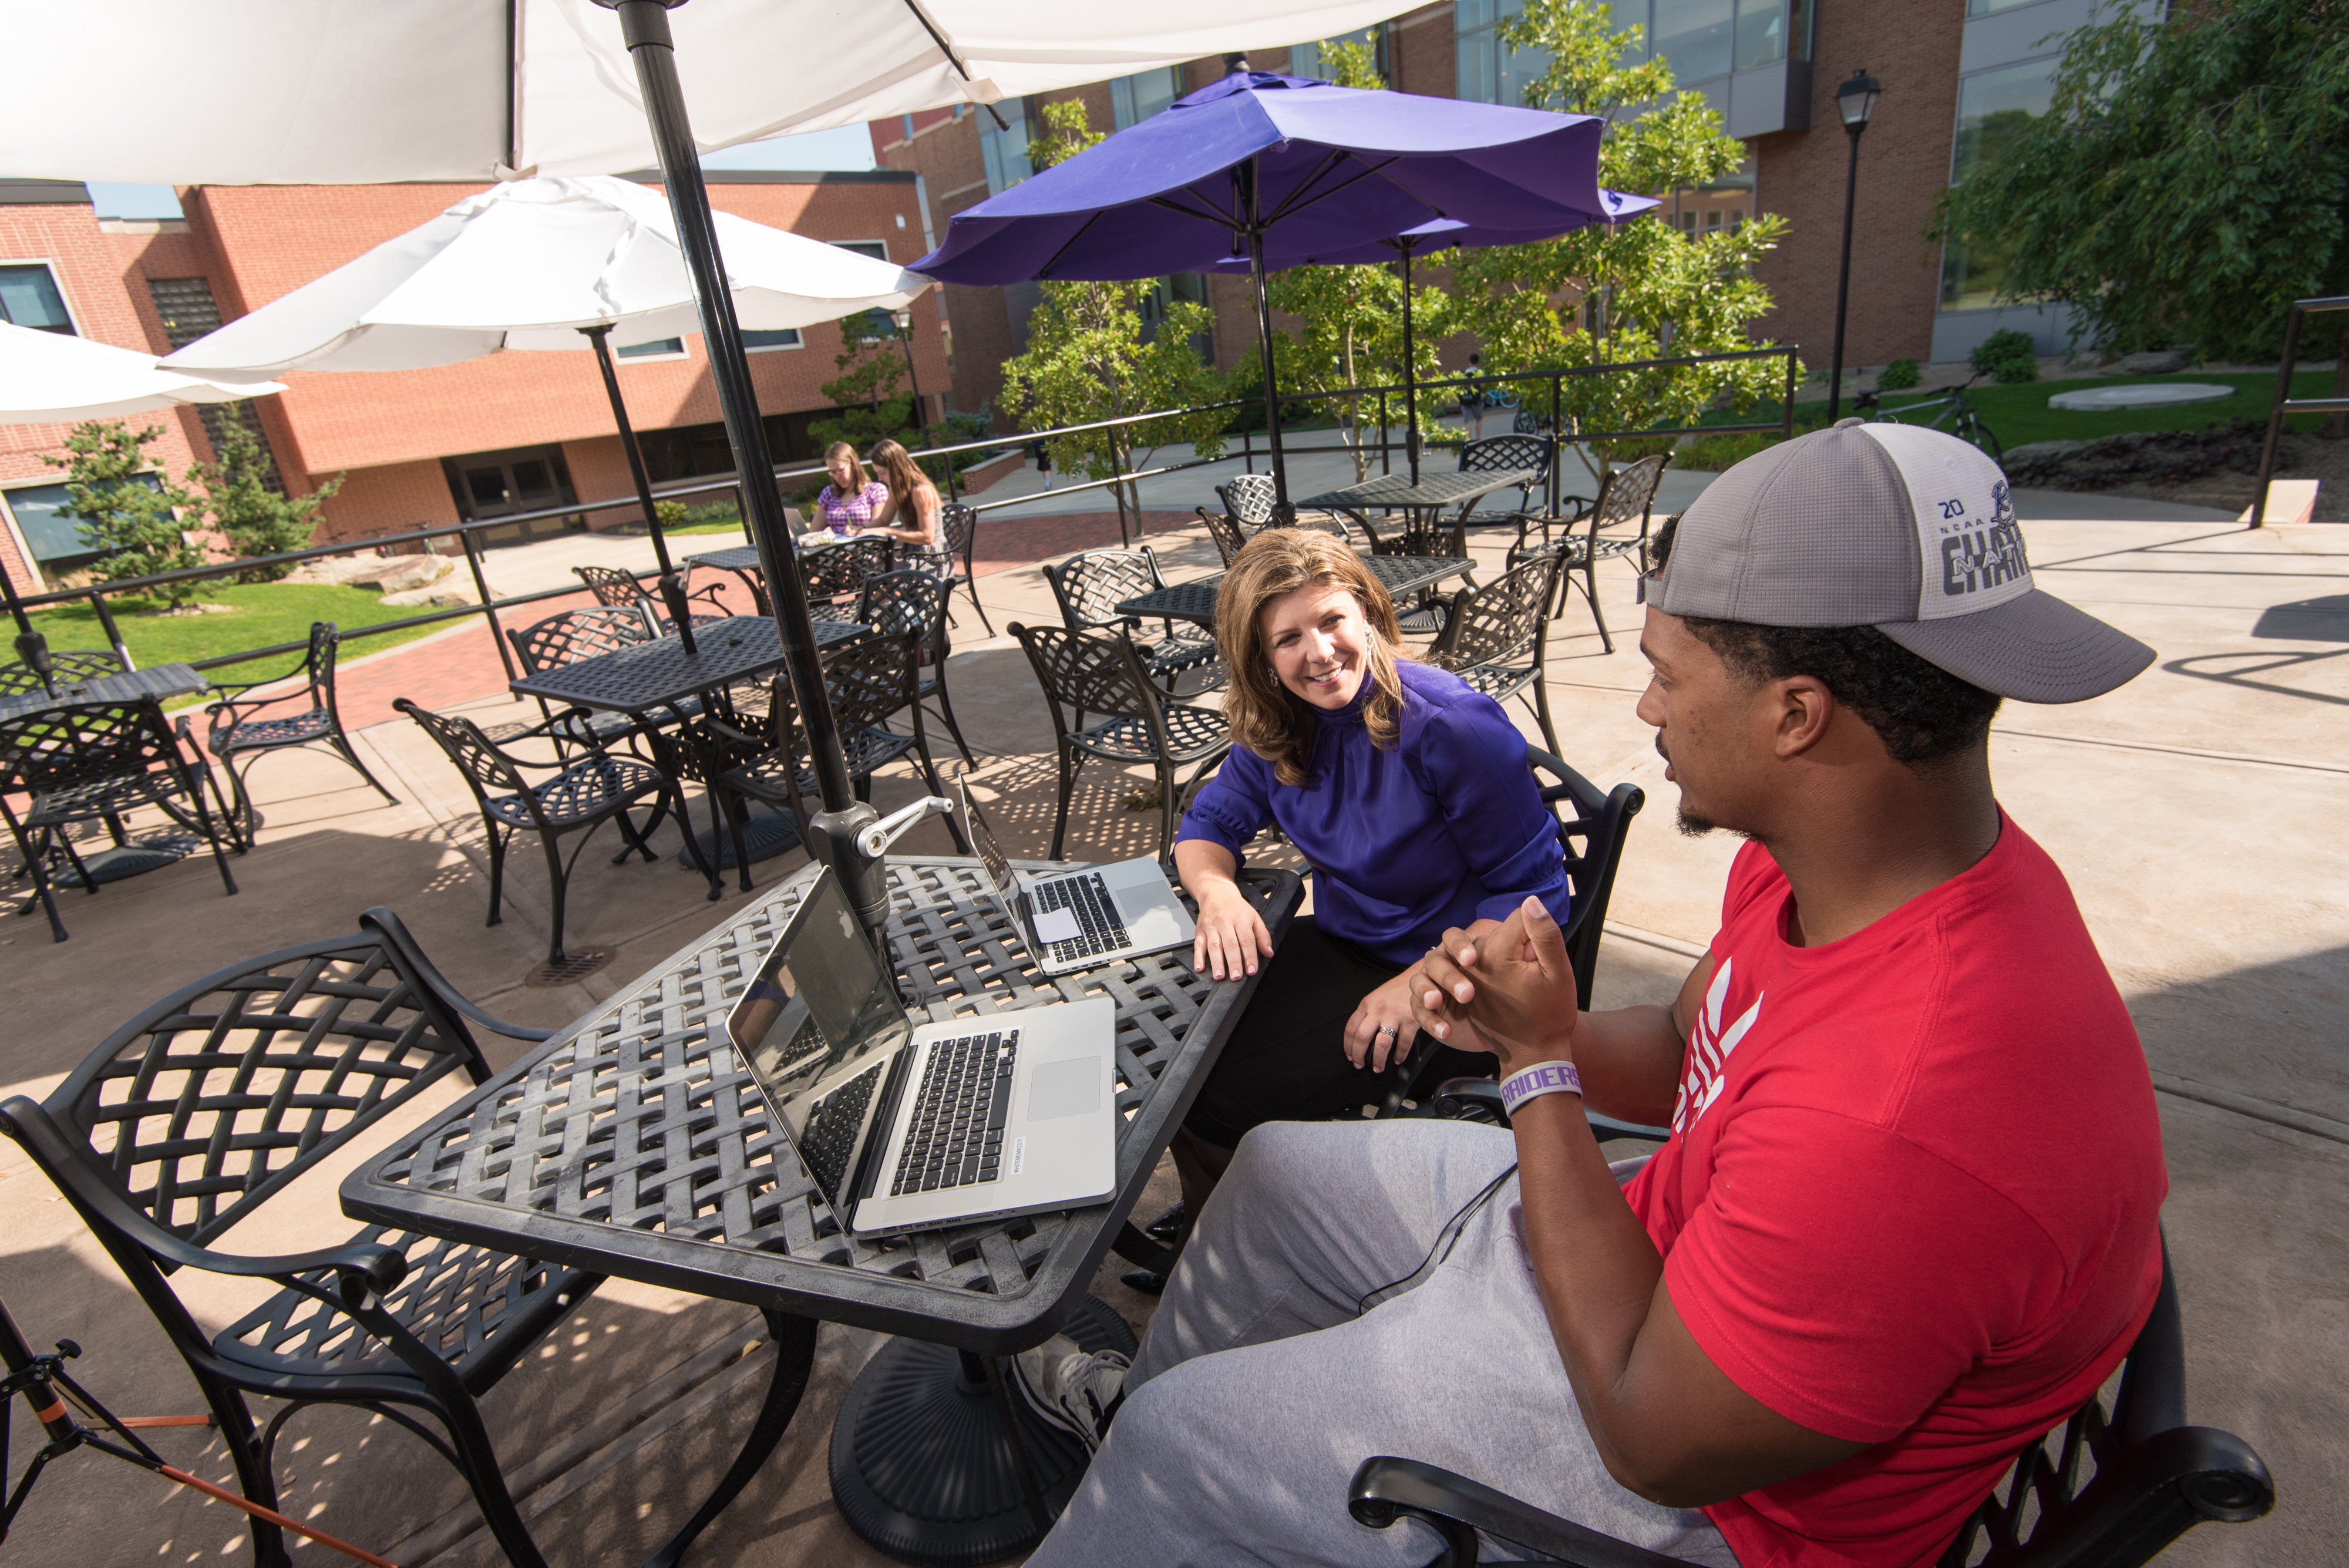 Student and professor using laptop on patio of library